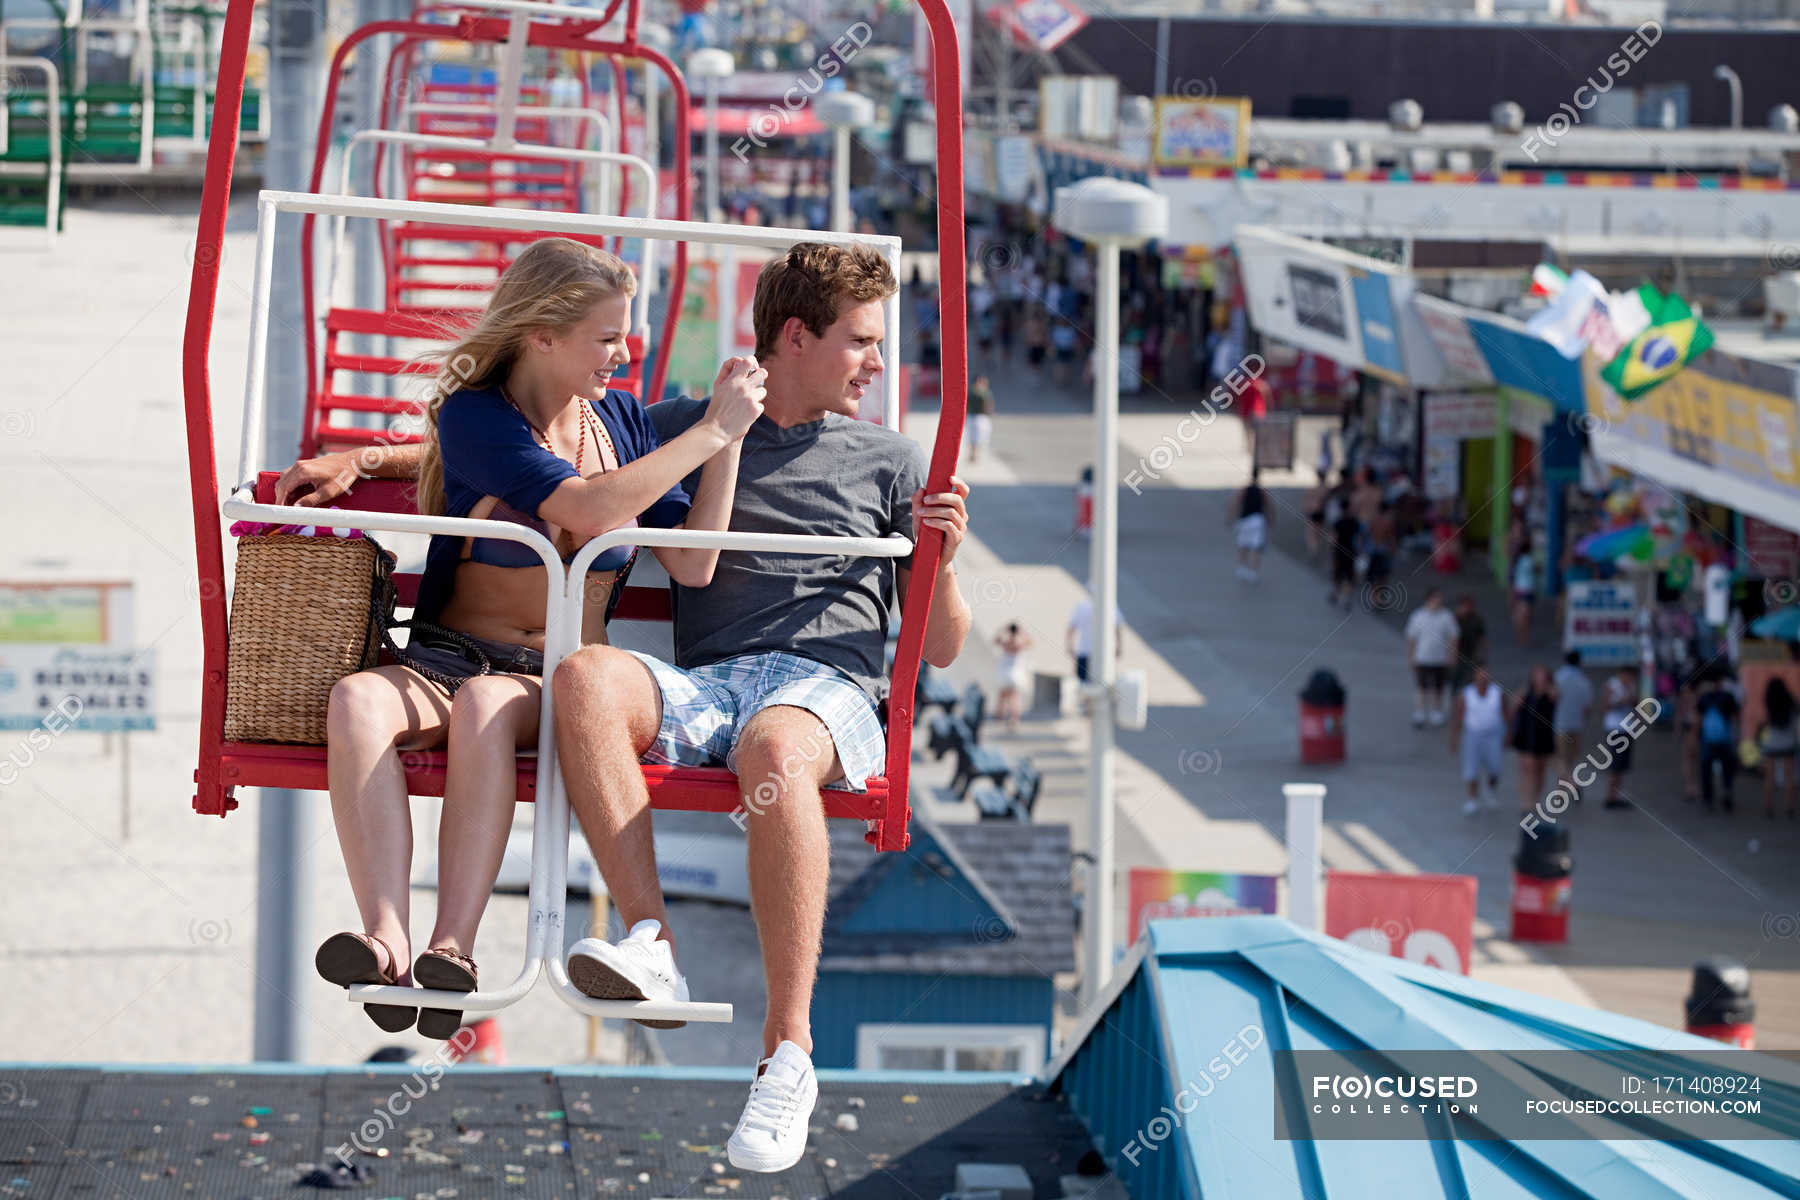 Teenage Couple On Ferris Wheel Pier Casual Clothing Stock Photo 171408924